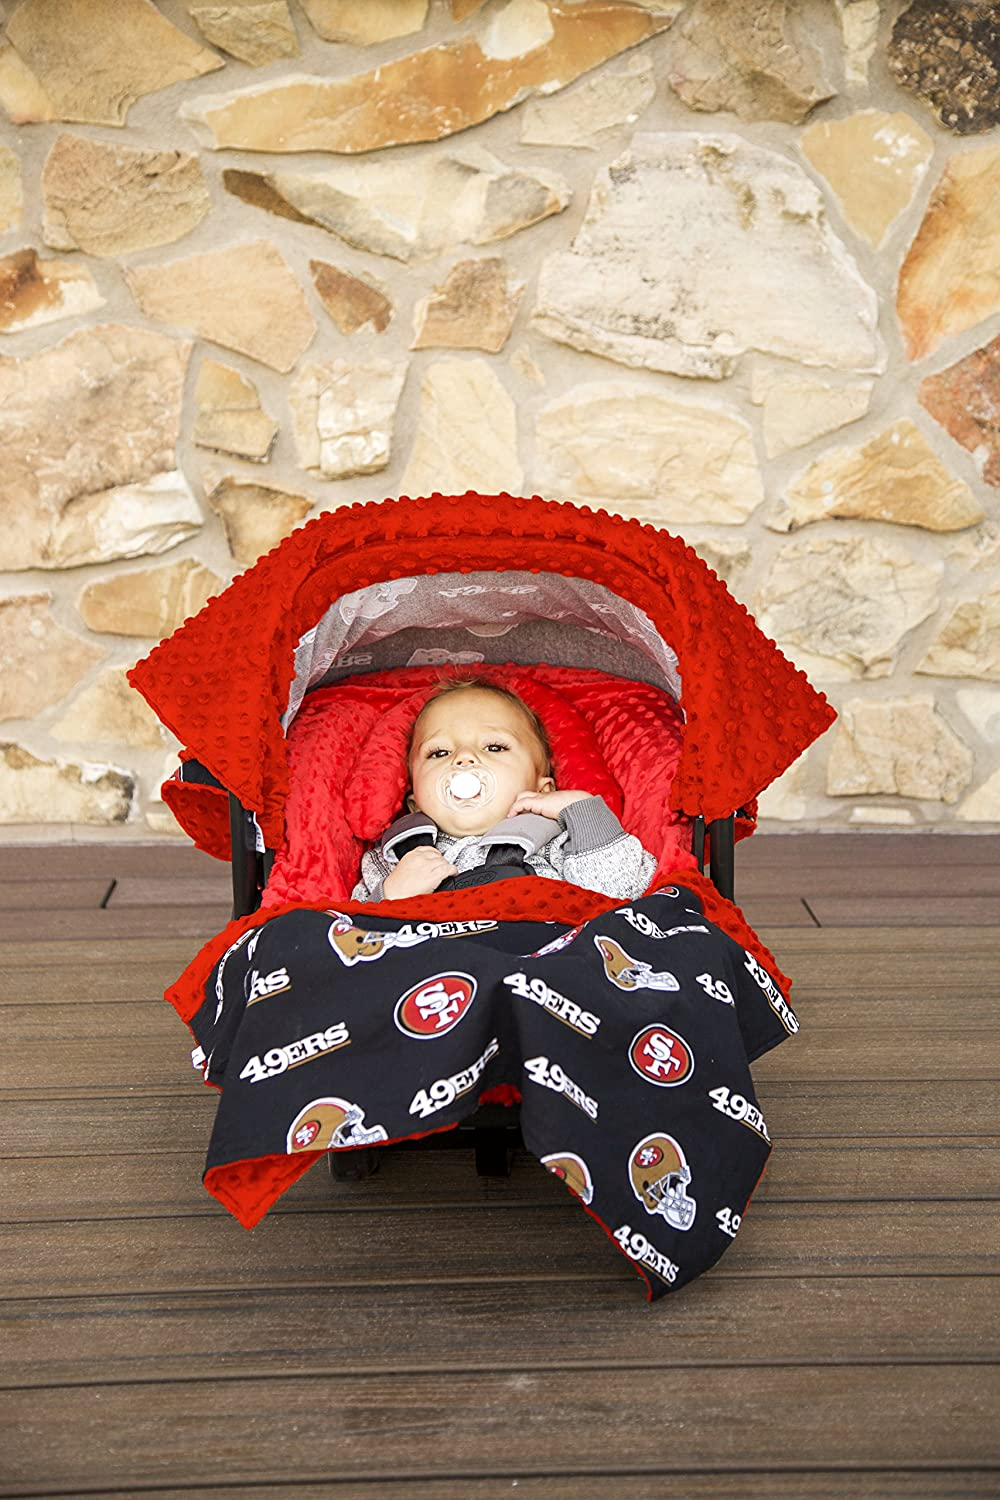 63049c11254 Amazon.com  NFL San Francisco 49ers The Whole Caboodle 5PC set - Baby Car  Seat Canopy with matching accessories  Baby